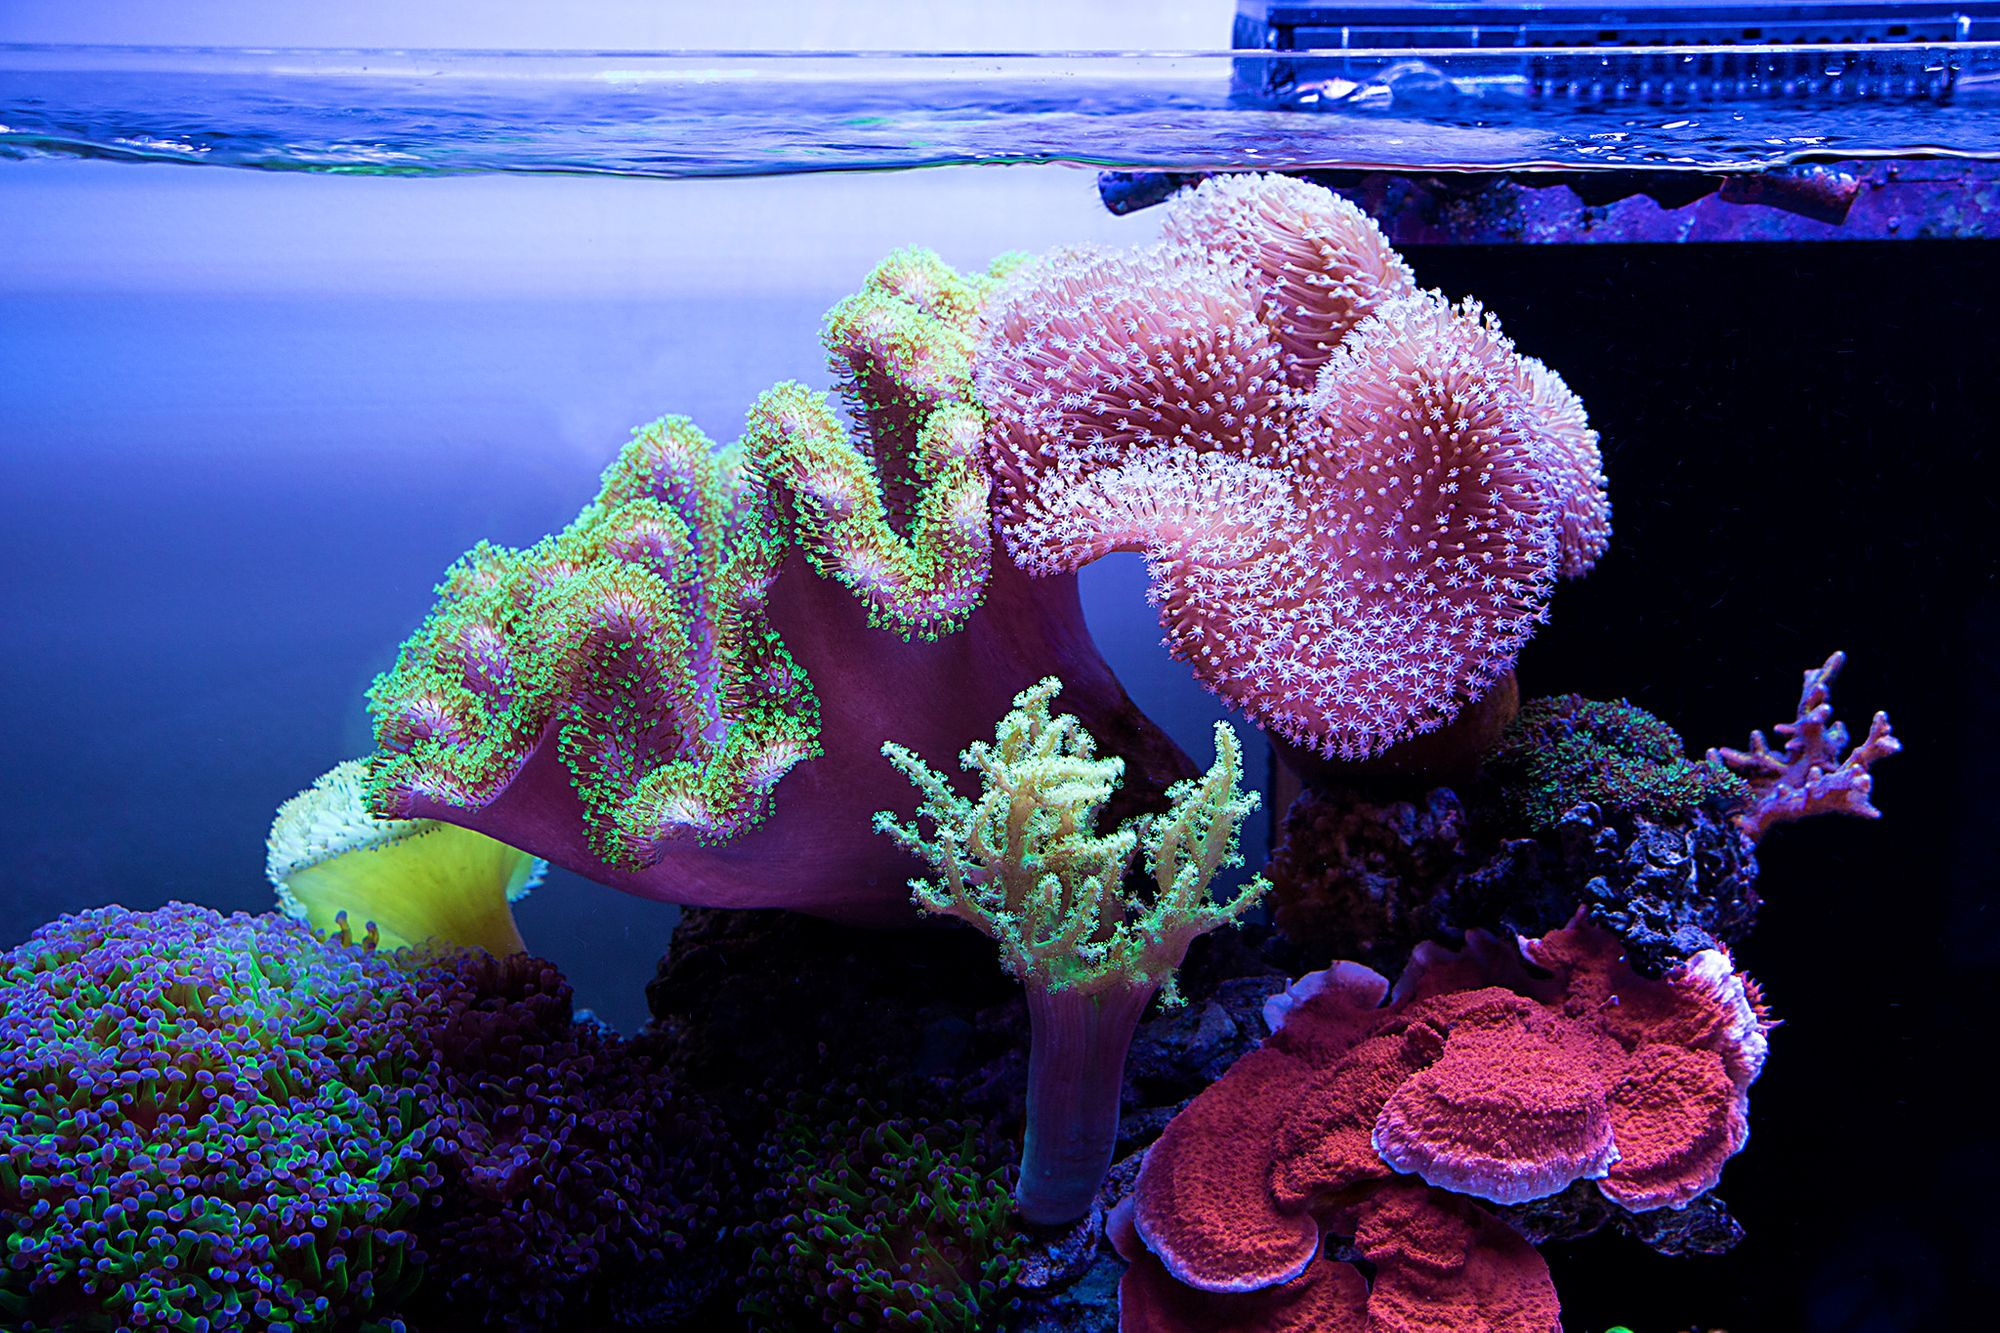 These Are The Best Beginner Corals Photo Broadfield Https Www Reef2reef Com Threads What Saltwater Aquarium Fish Saltwater Aquarium Saltwater Fish Tanks